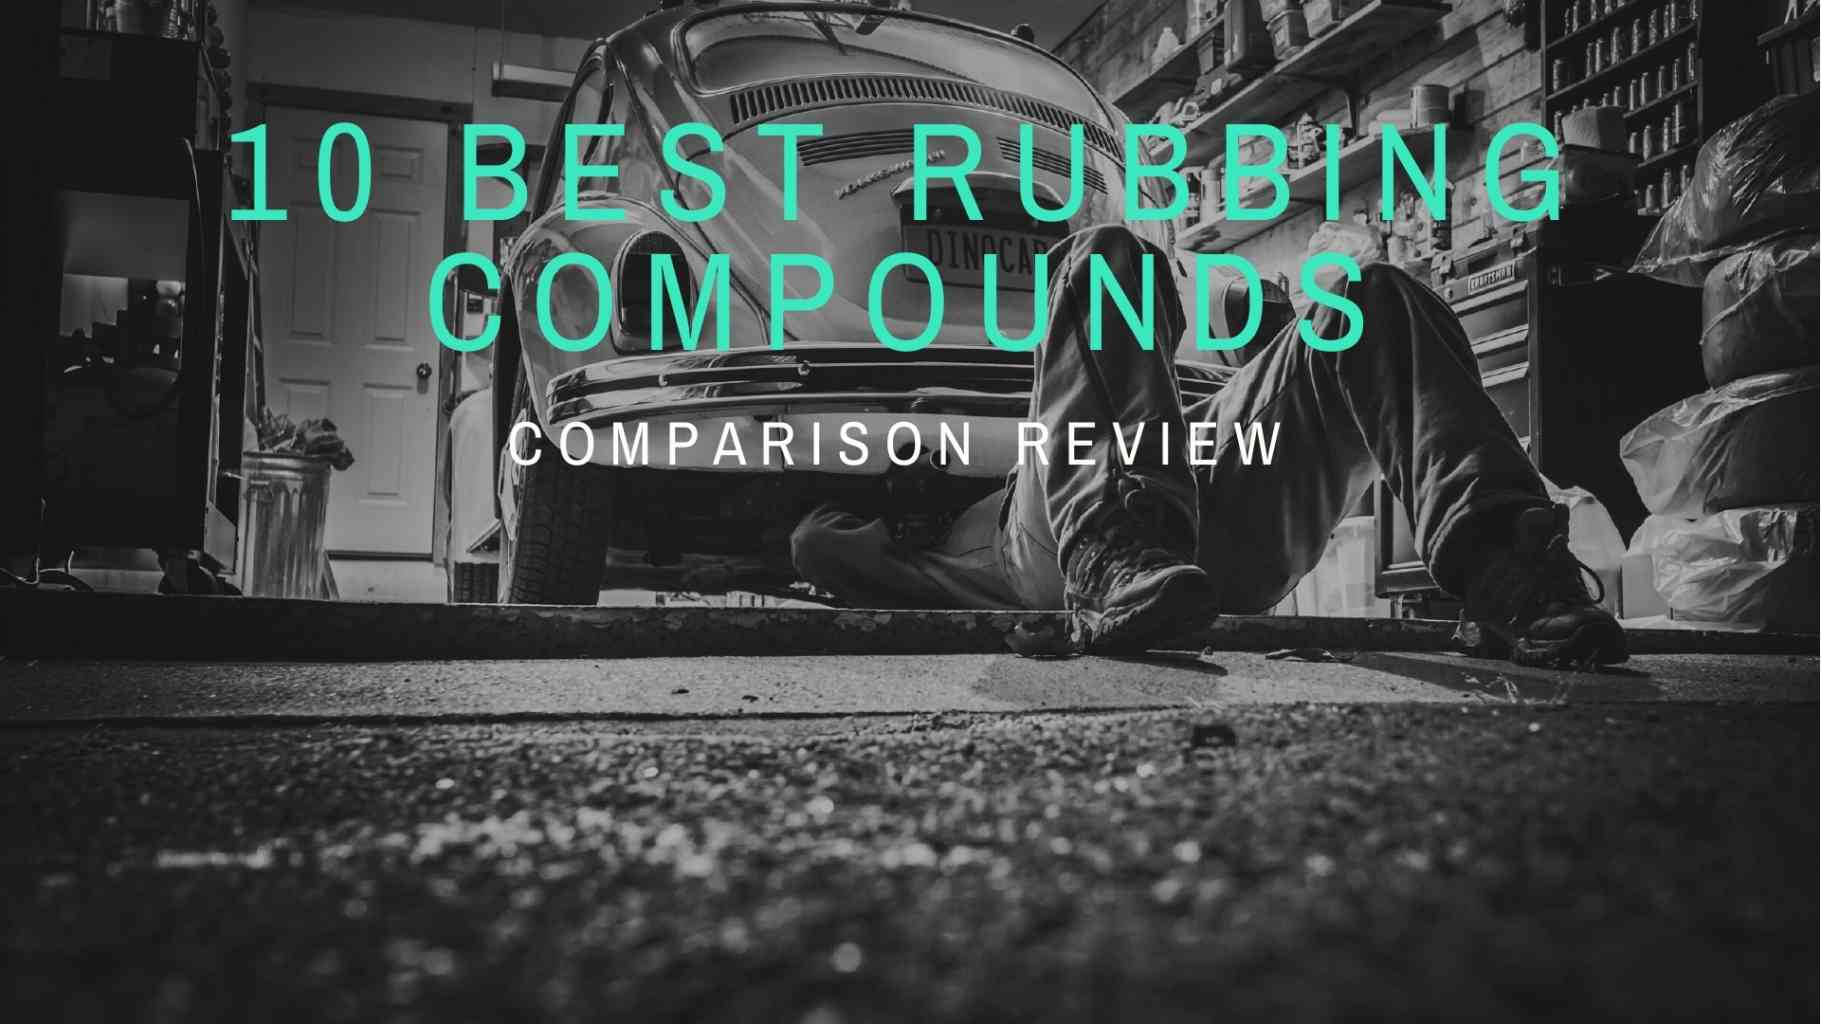 10 Best Rubbing Compounds